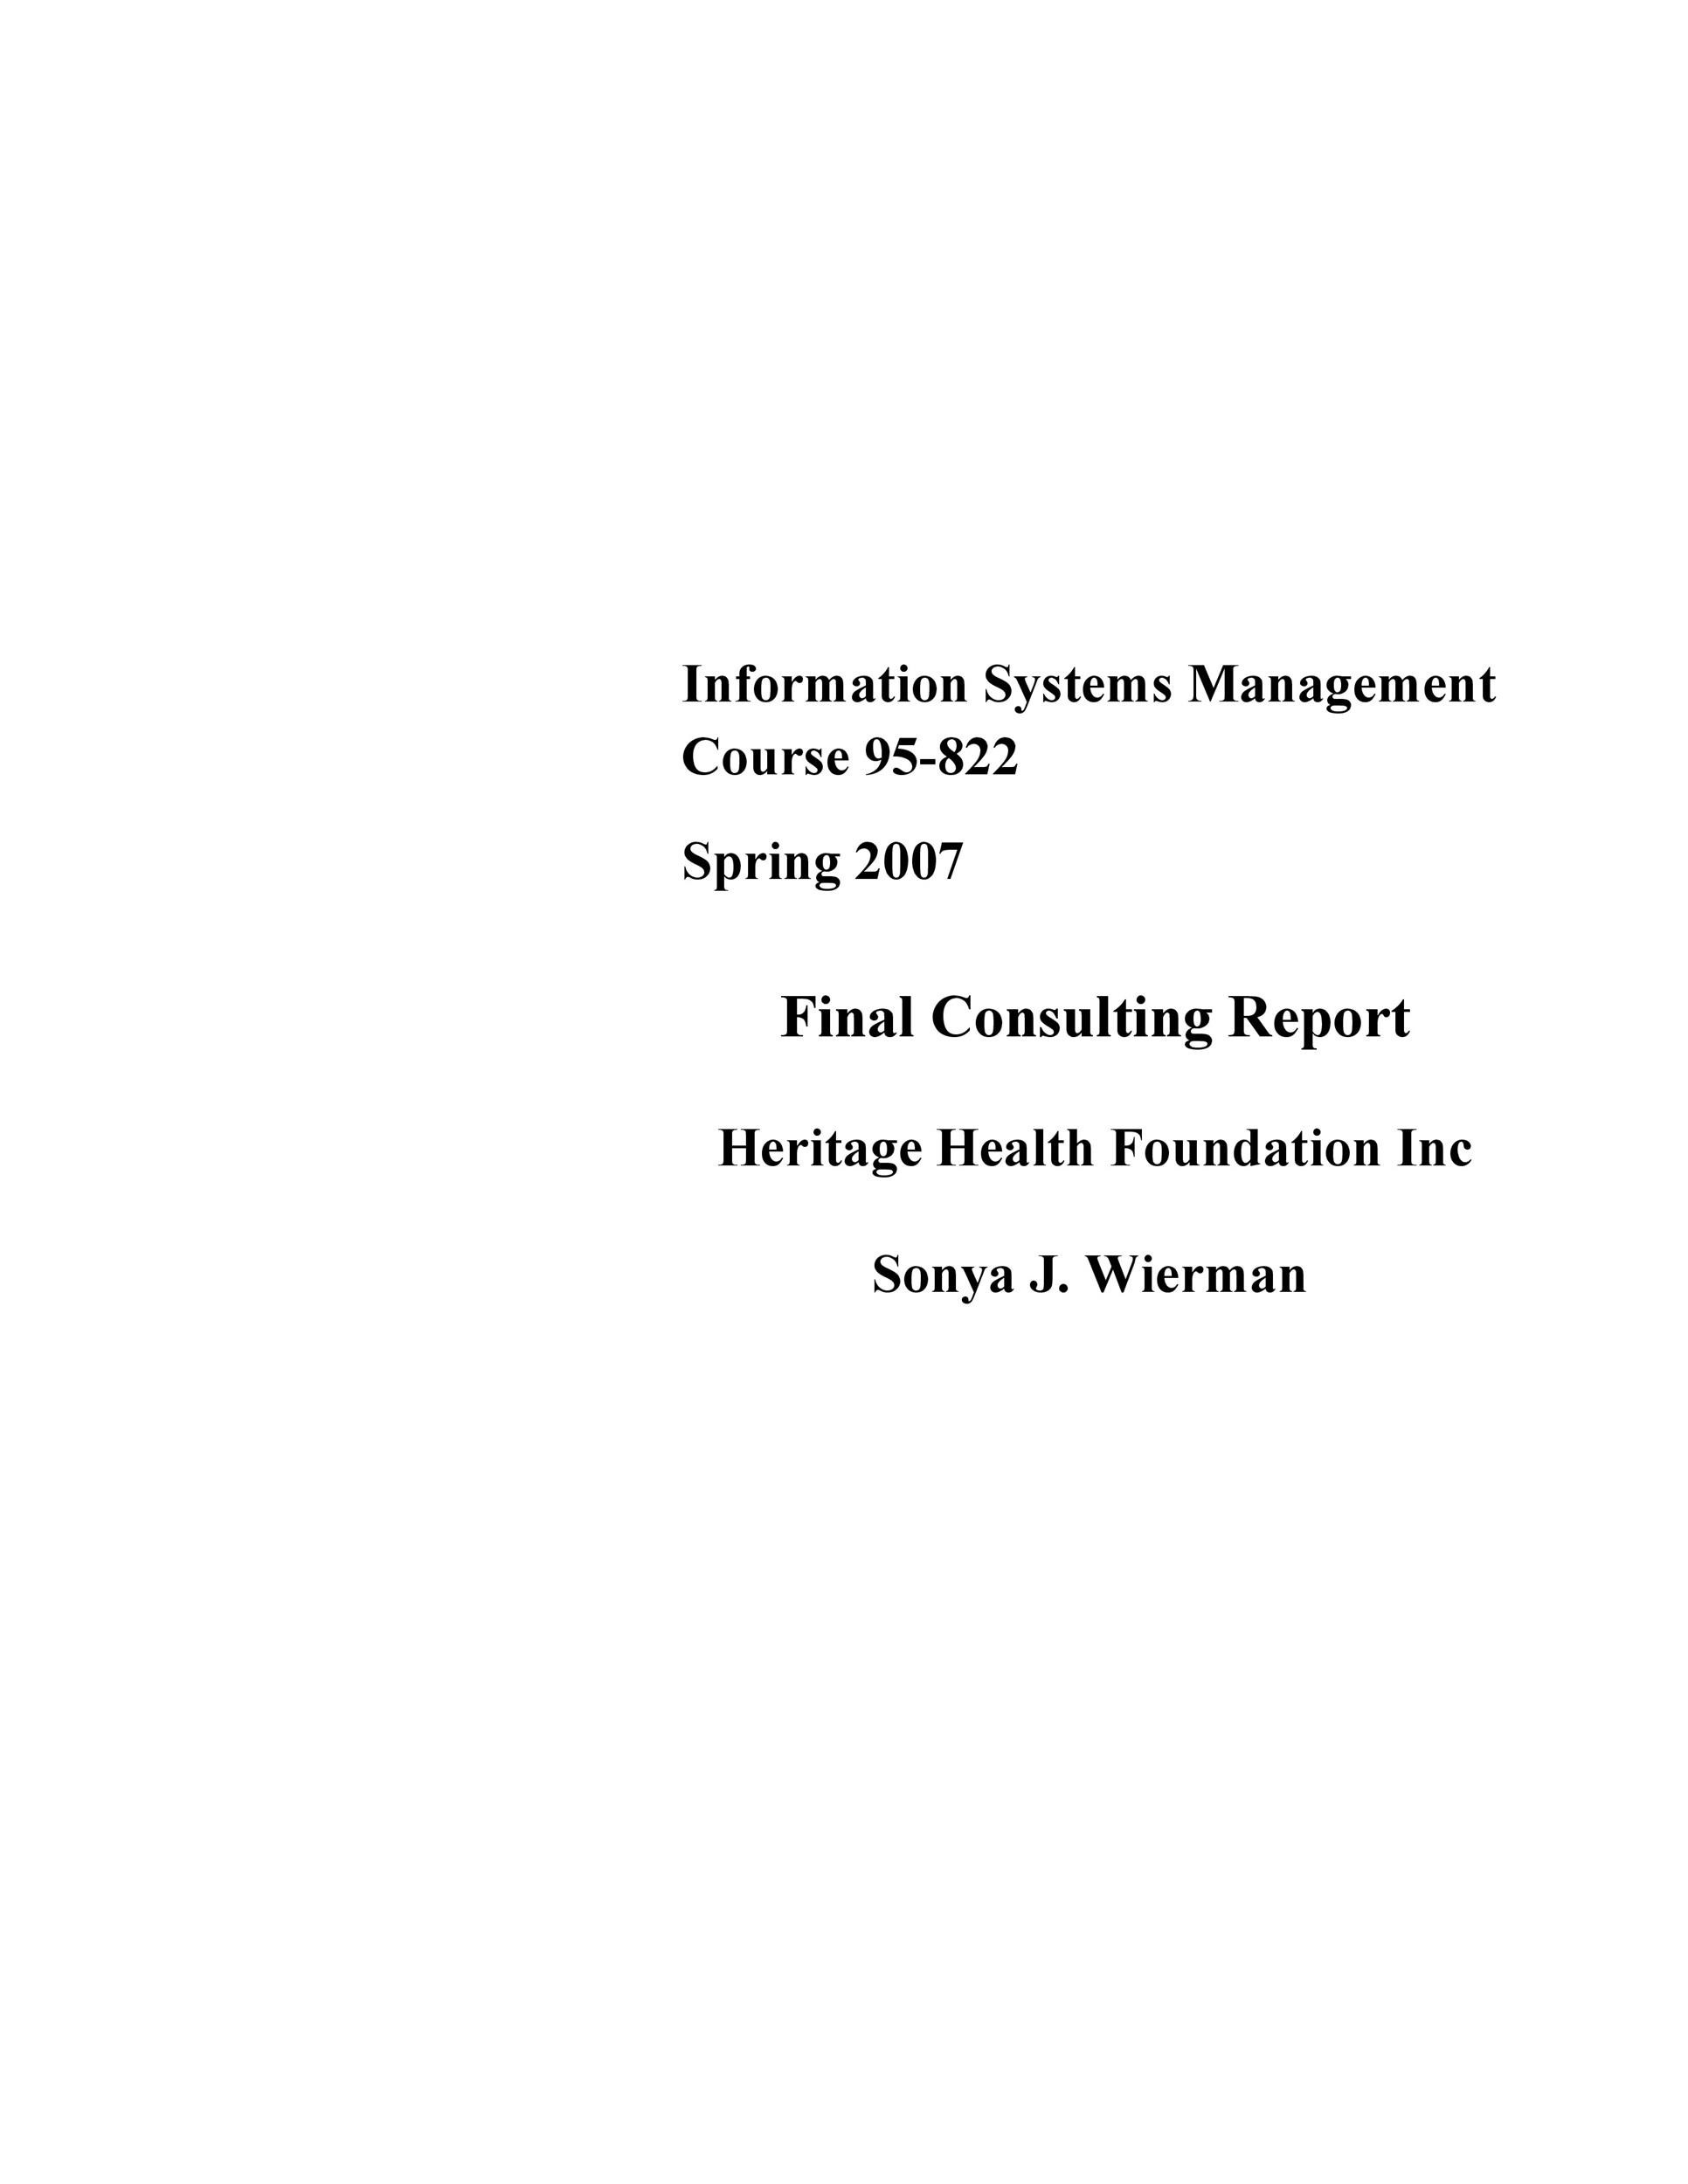 Free consulting report template 43